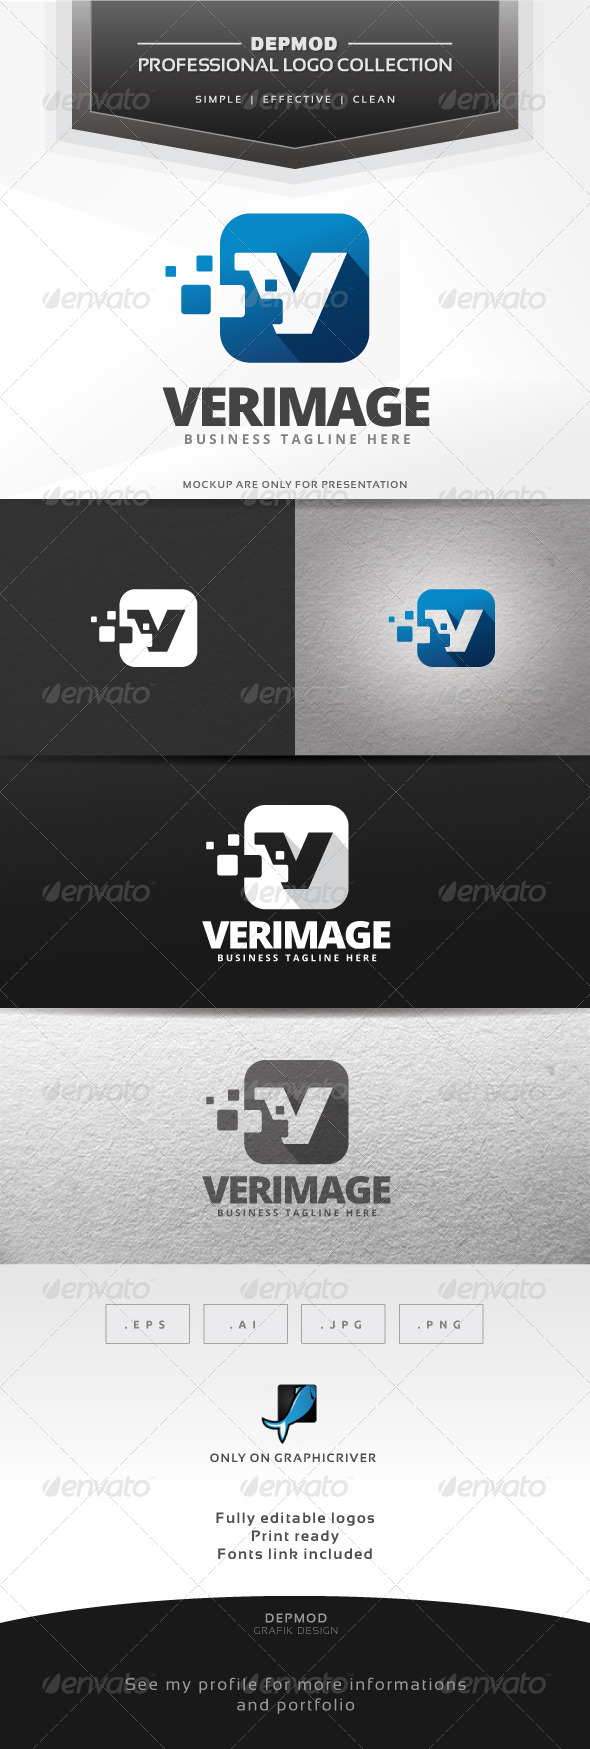 GraphicRiver Verimage Logo 6860134